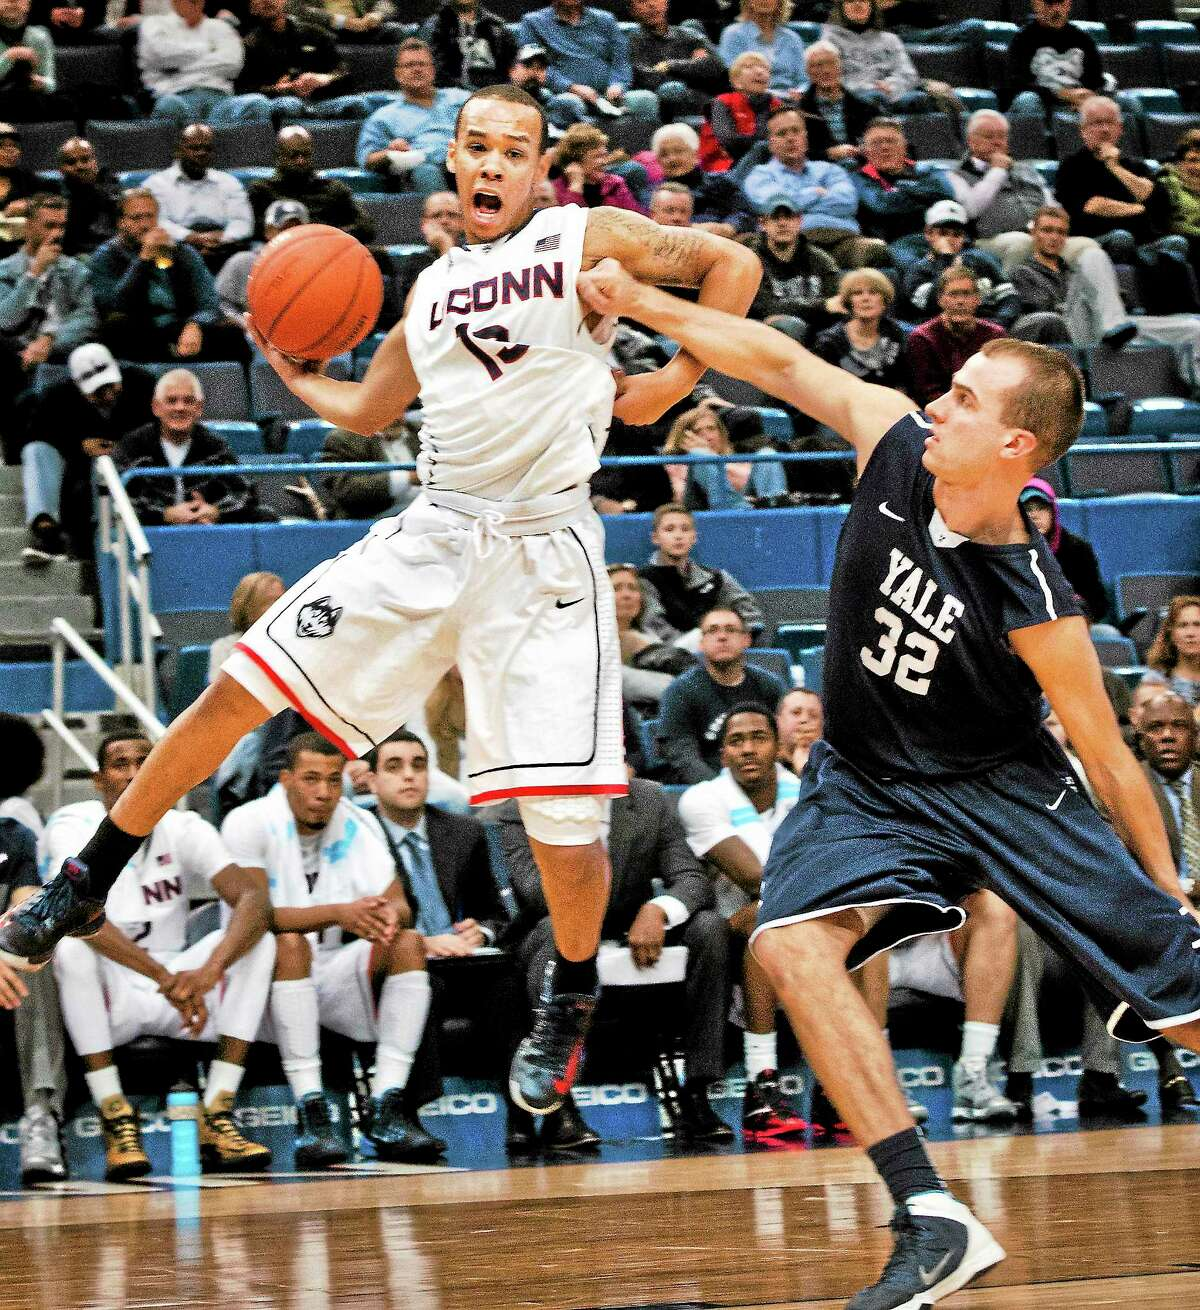 UConn's Shabazz Napier is fouled by Yale's Greg Kelly in the second half on Monday.